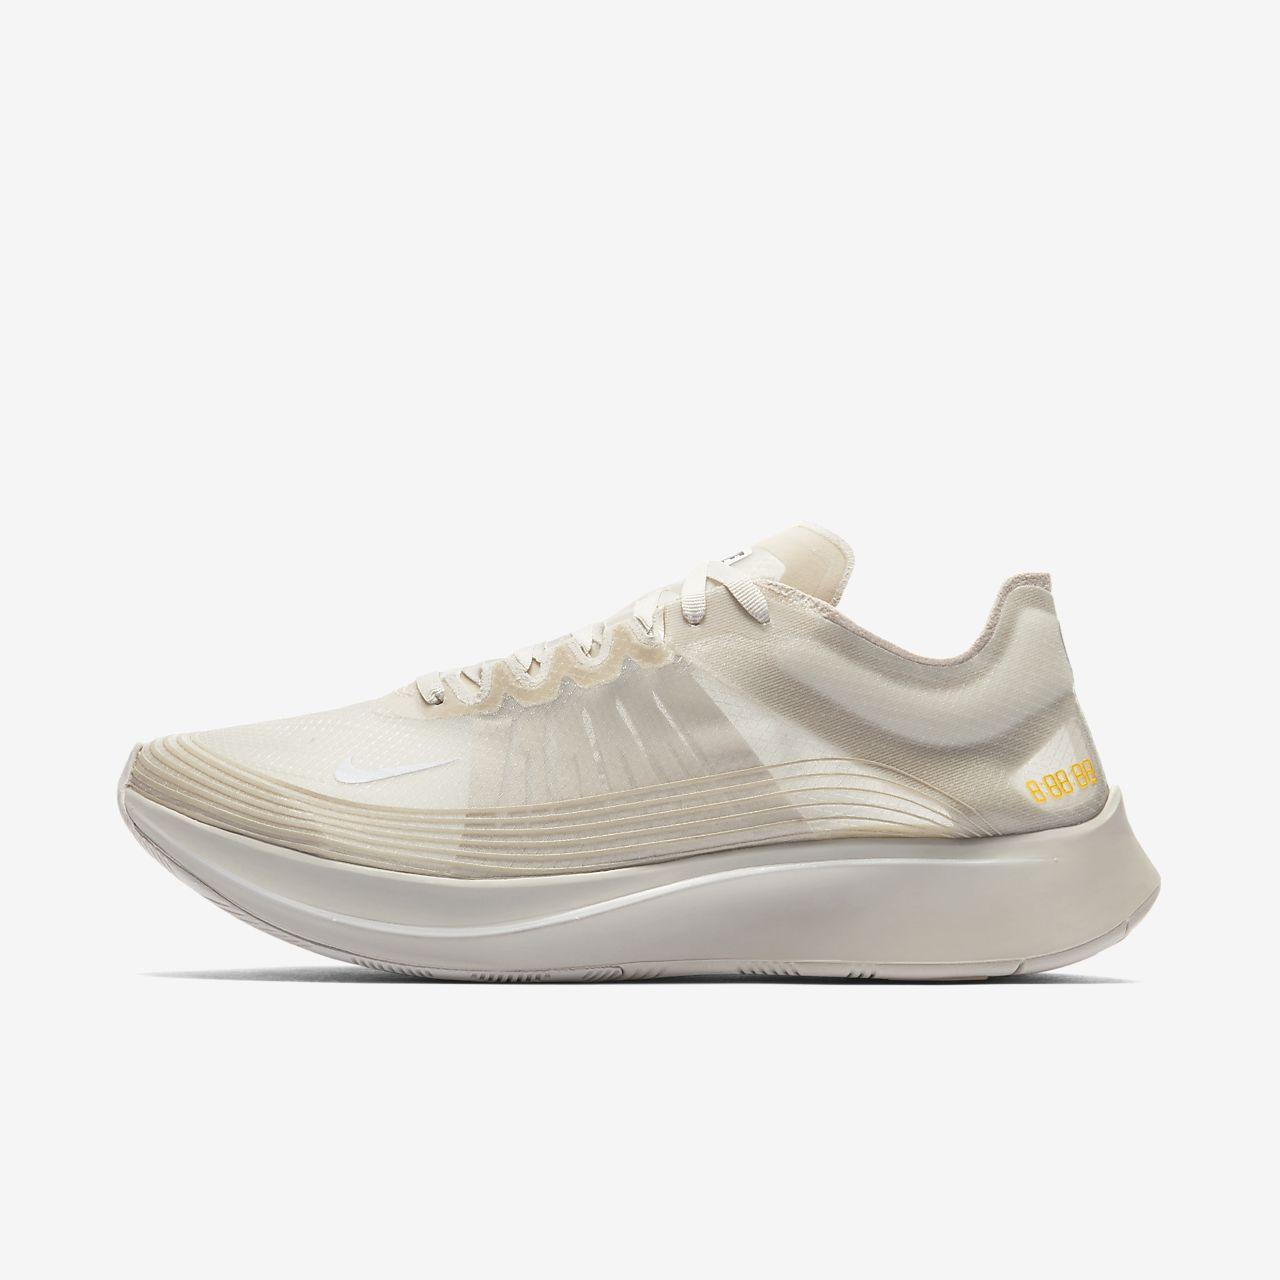 Chaussure Be Fly De Running Sp Nike Zoom vvrYp